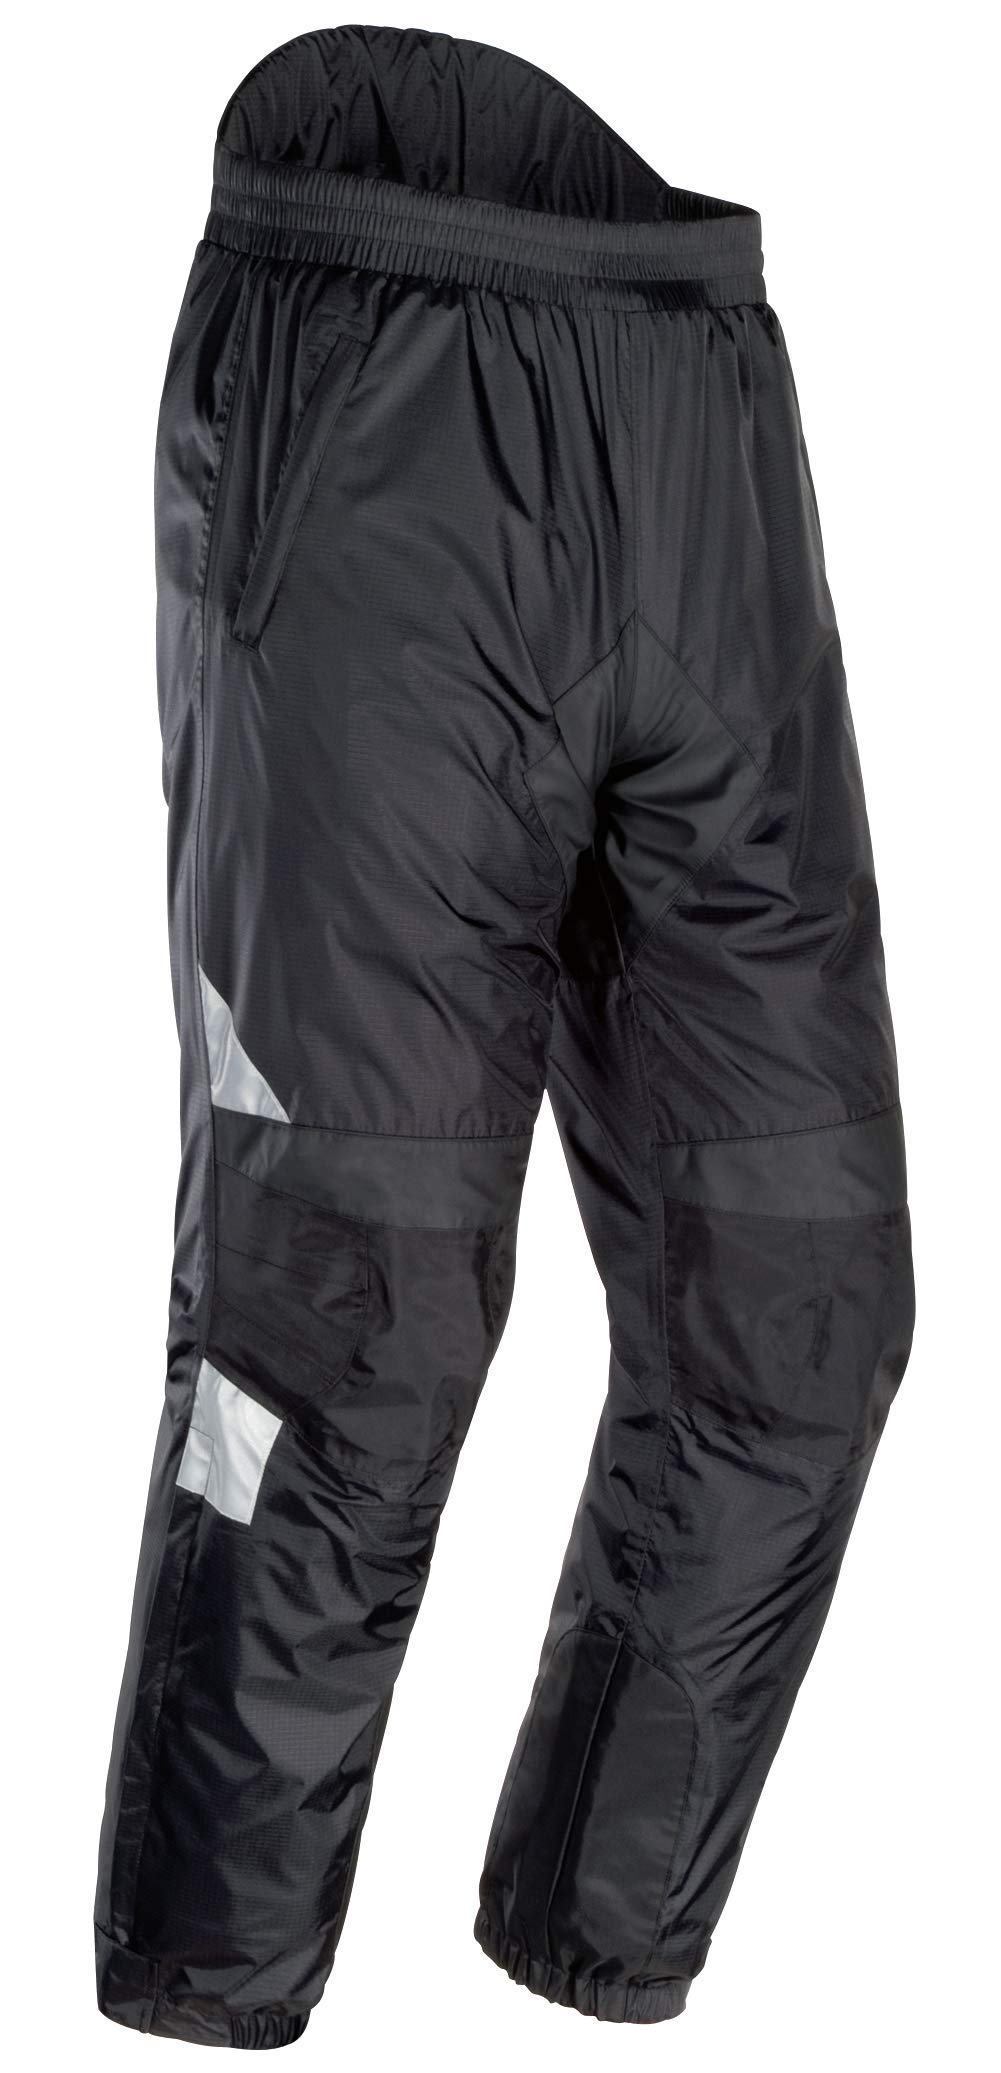 Tour Master Sentinel Rain Women's Street Motorcycle Pants - Black (LG Tall) by Tourmaster